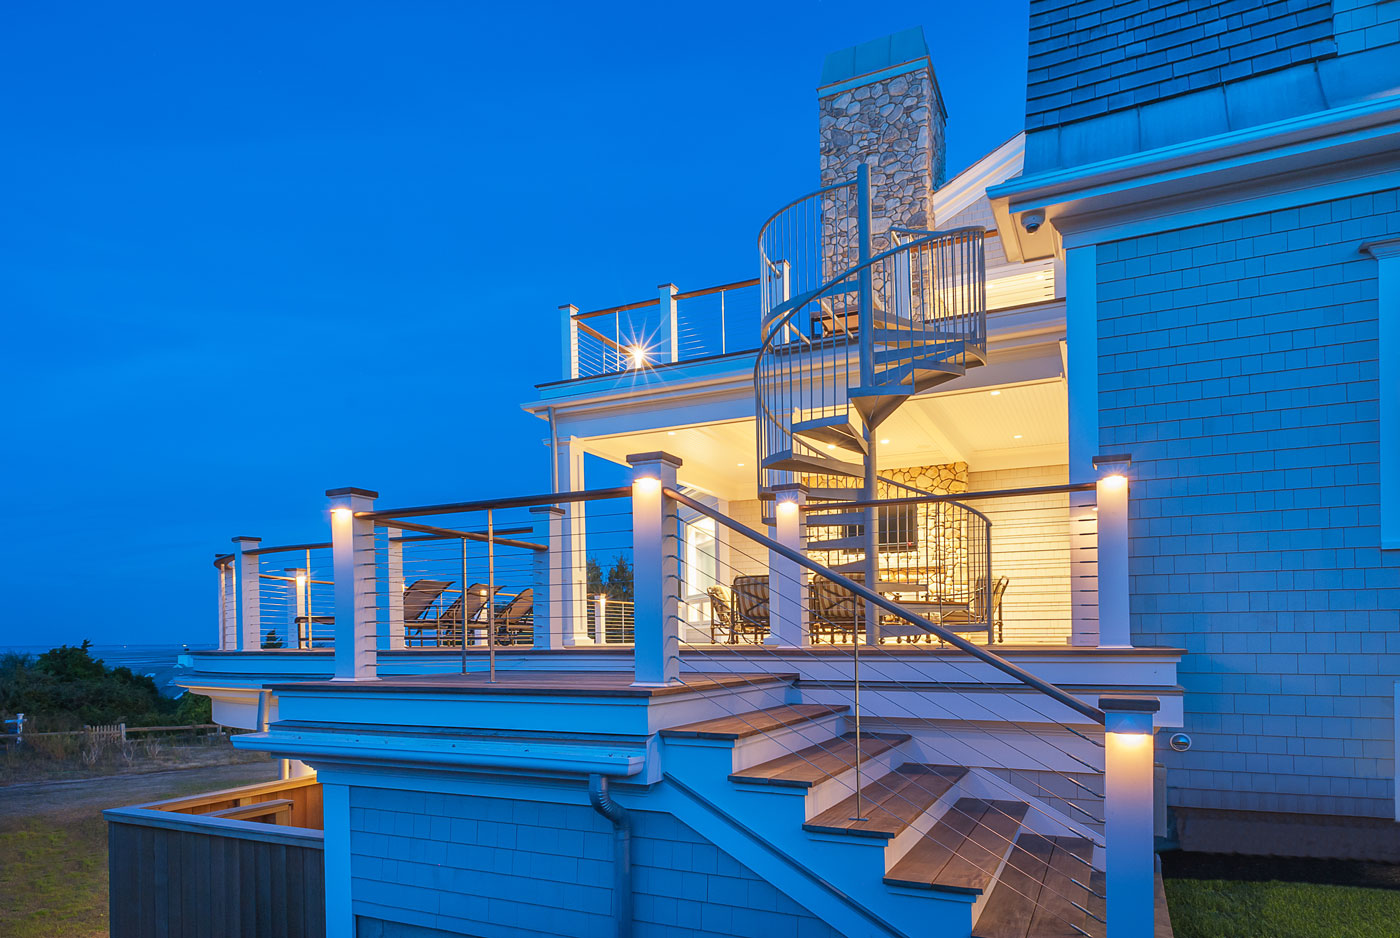 Cape Cod custom home and multi-level deck constructed by Cape Dreams Building and Design